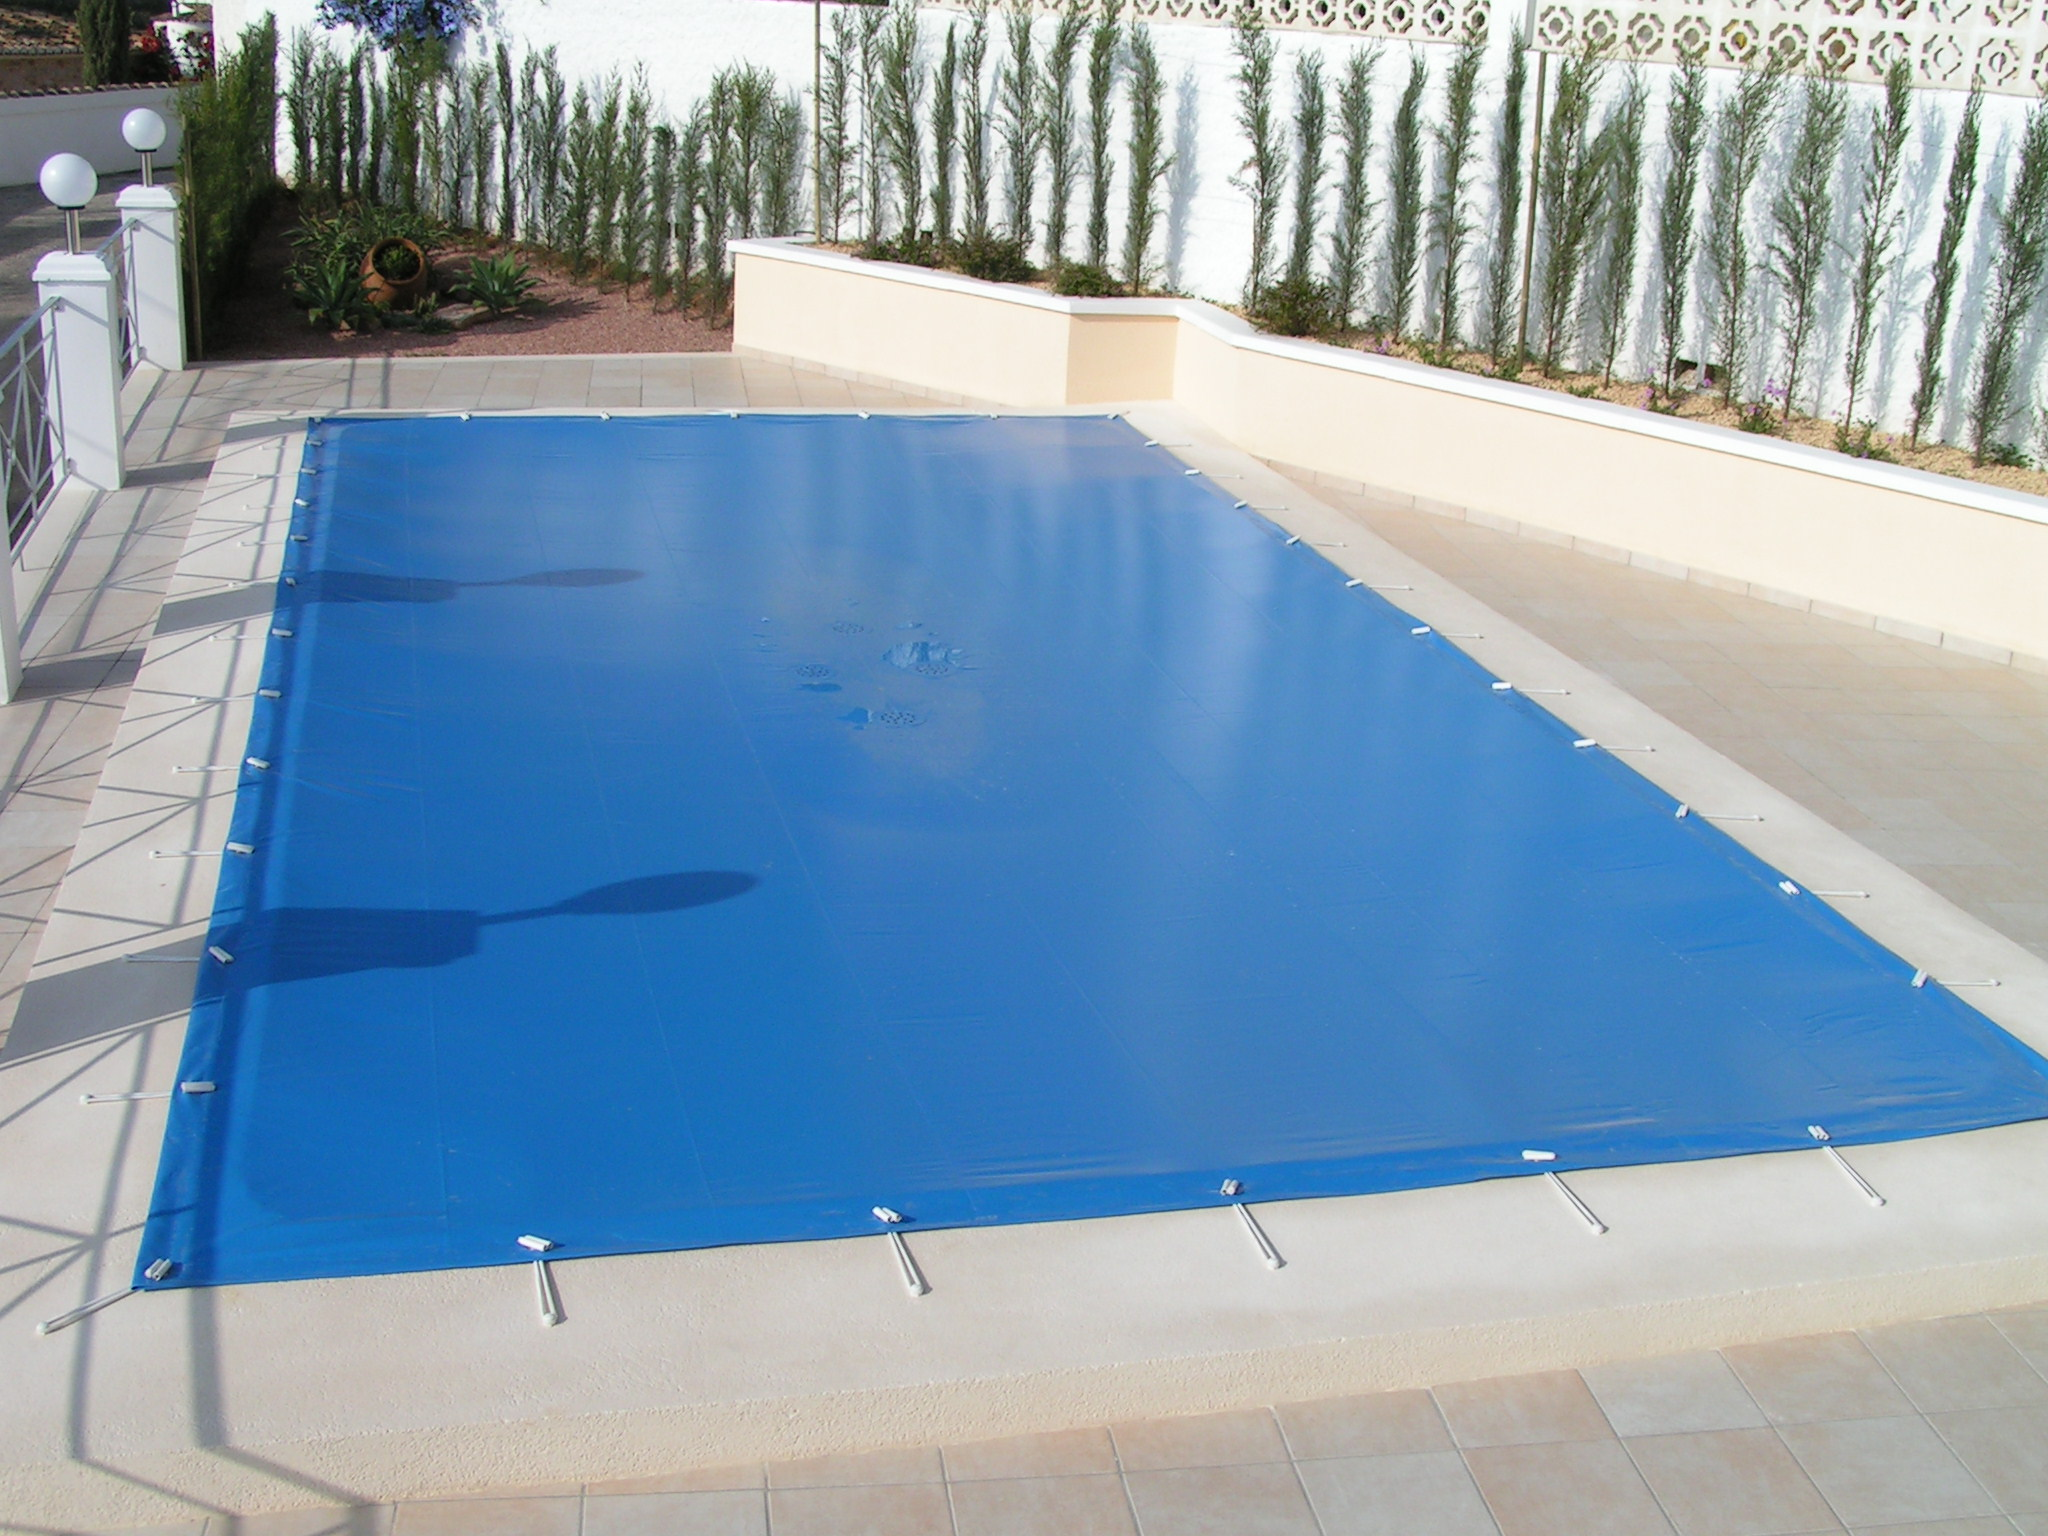 5 benefits of a pool cover se pool supply chemical inc - Cubiertas de lona para piscinas ...